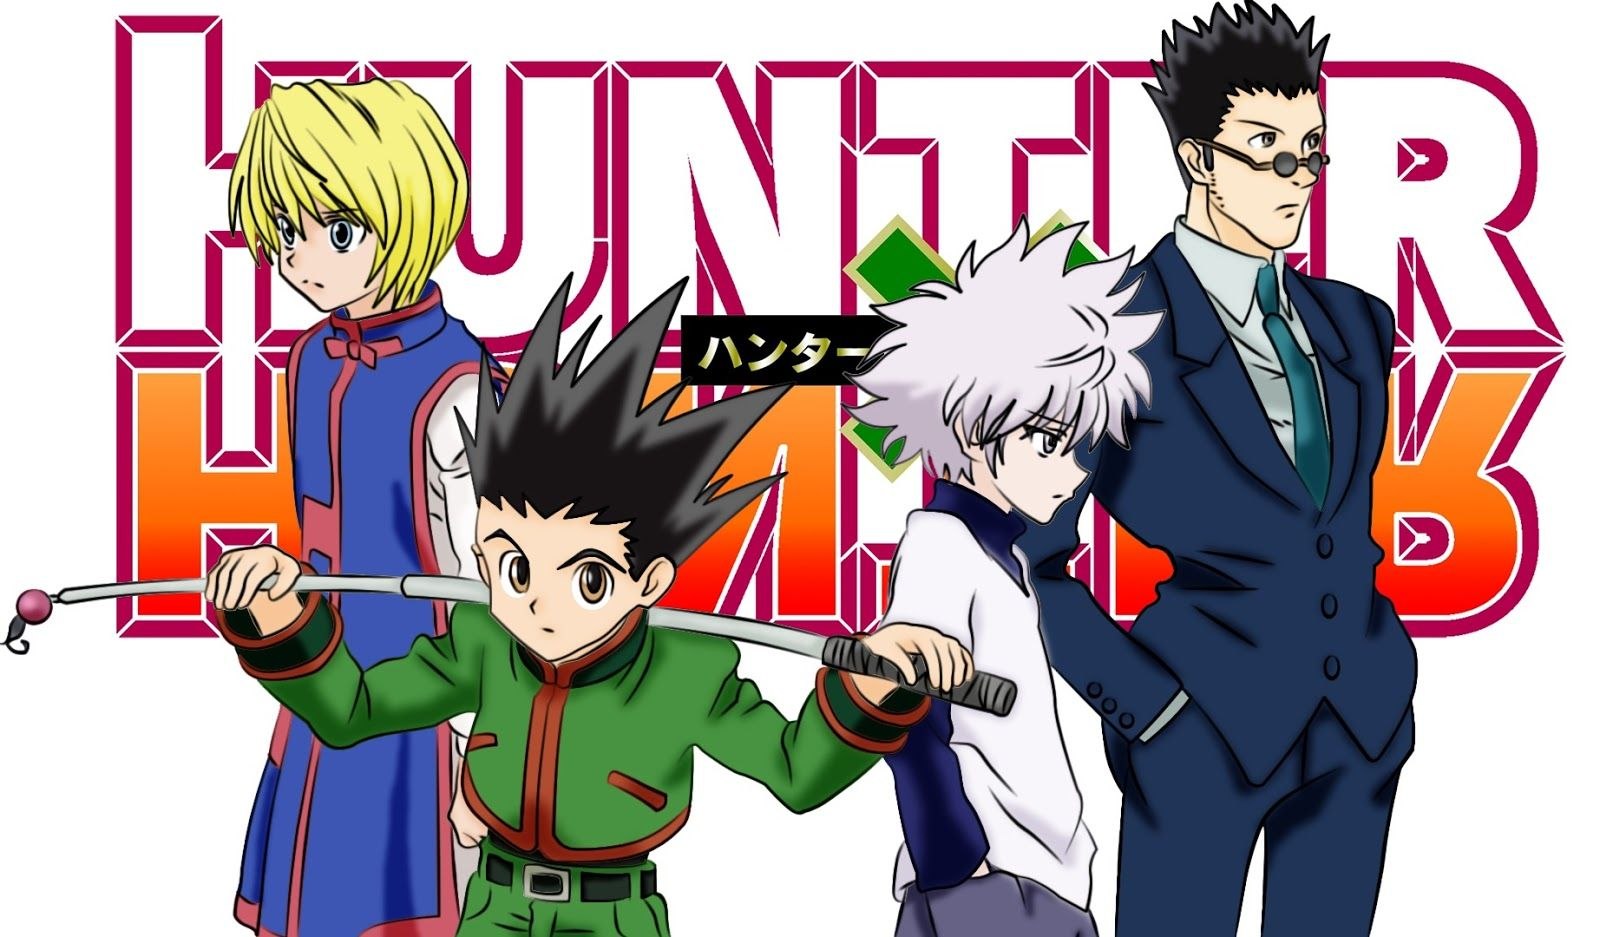 Hunter x hunter anime download here httpenterpcworldspot all characters hunter x hunter anime image gallery wallpaper hd desktop high quality voltagebd Choice Image